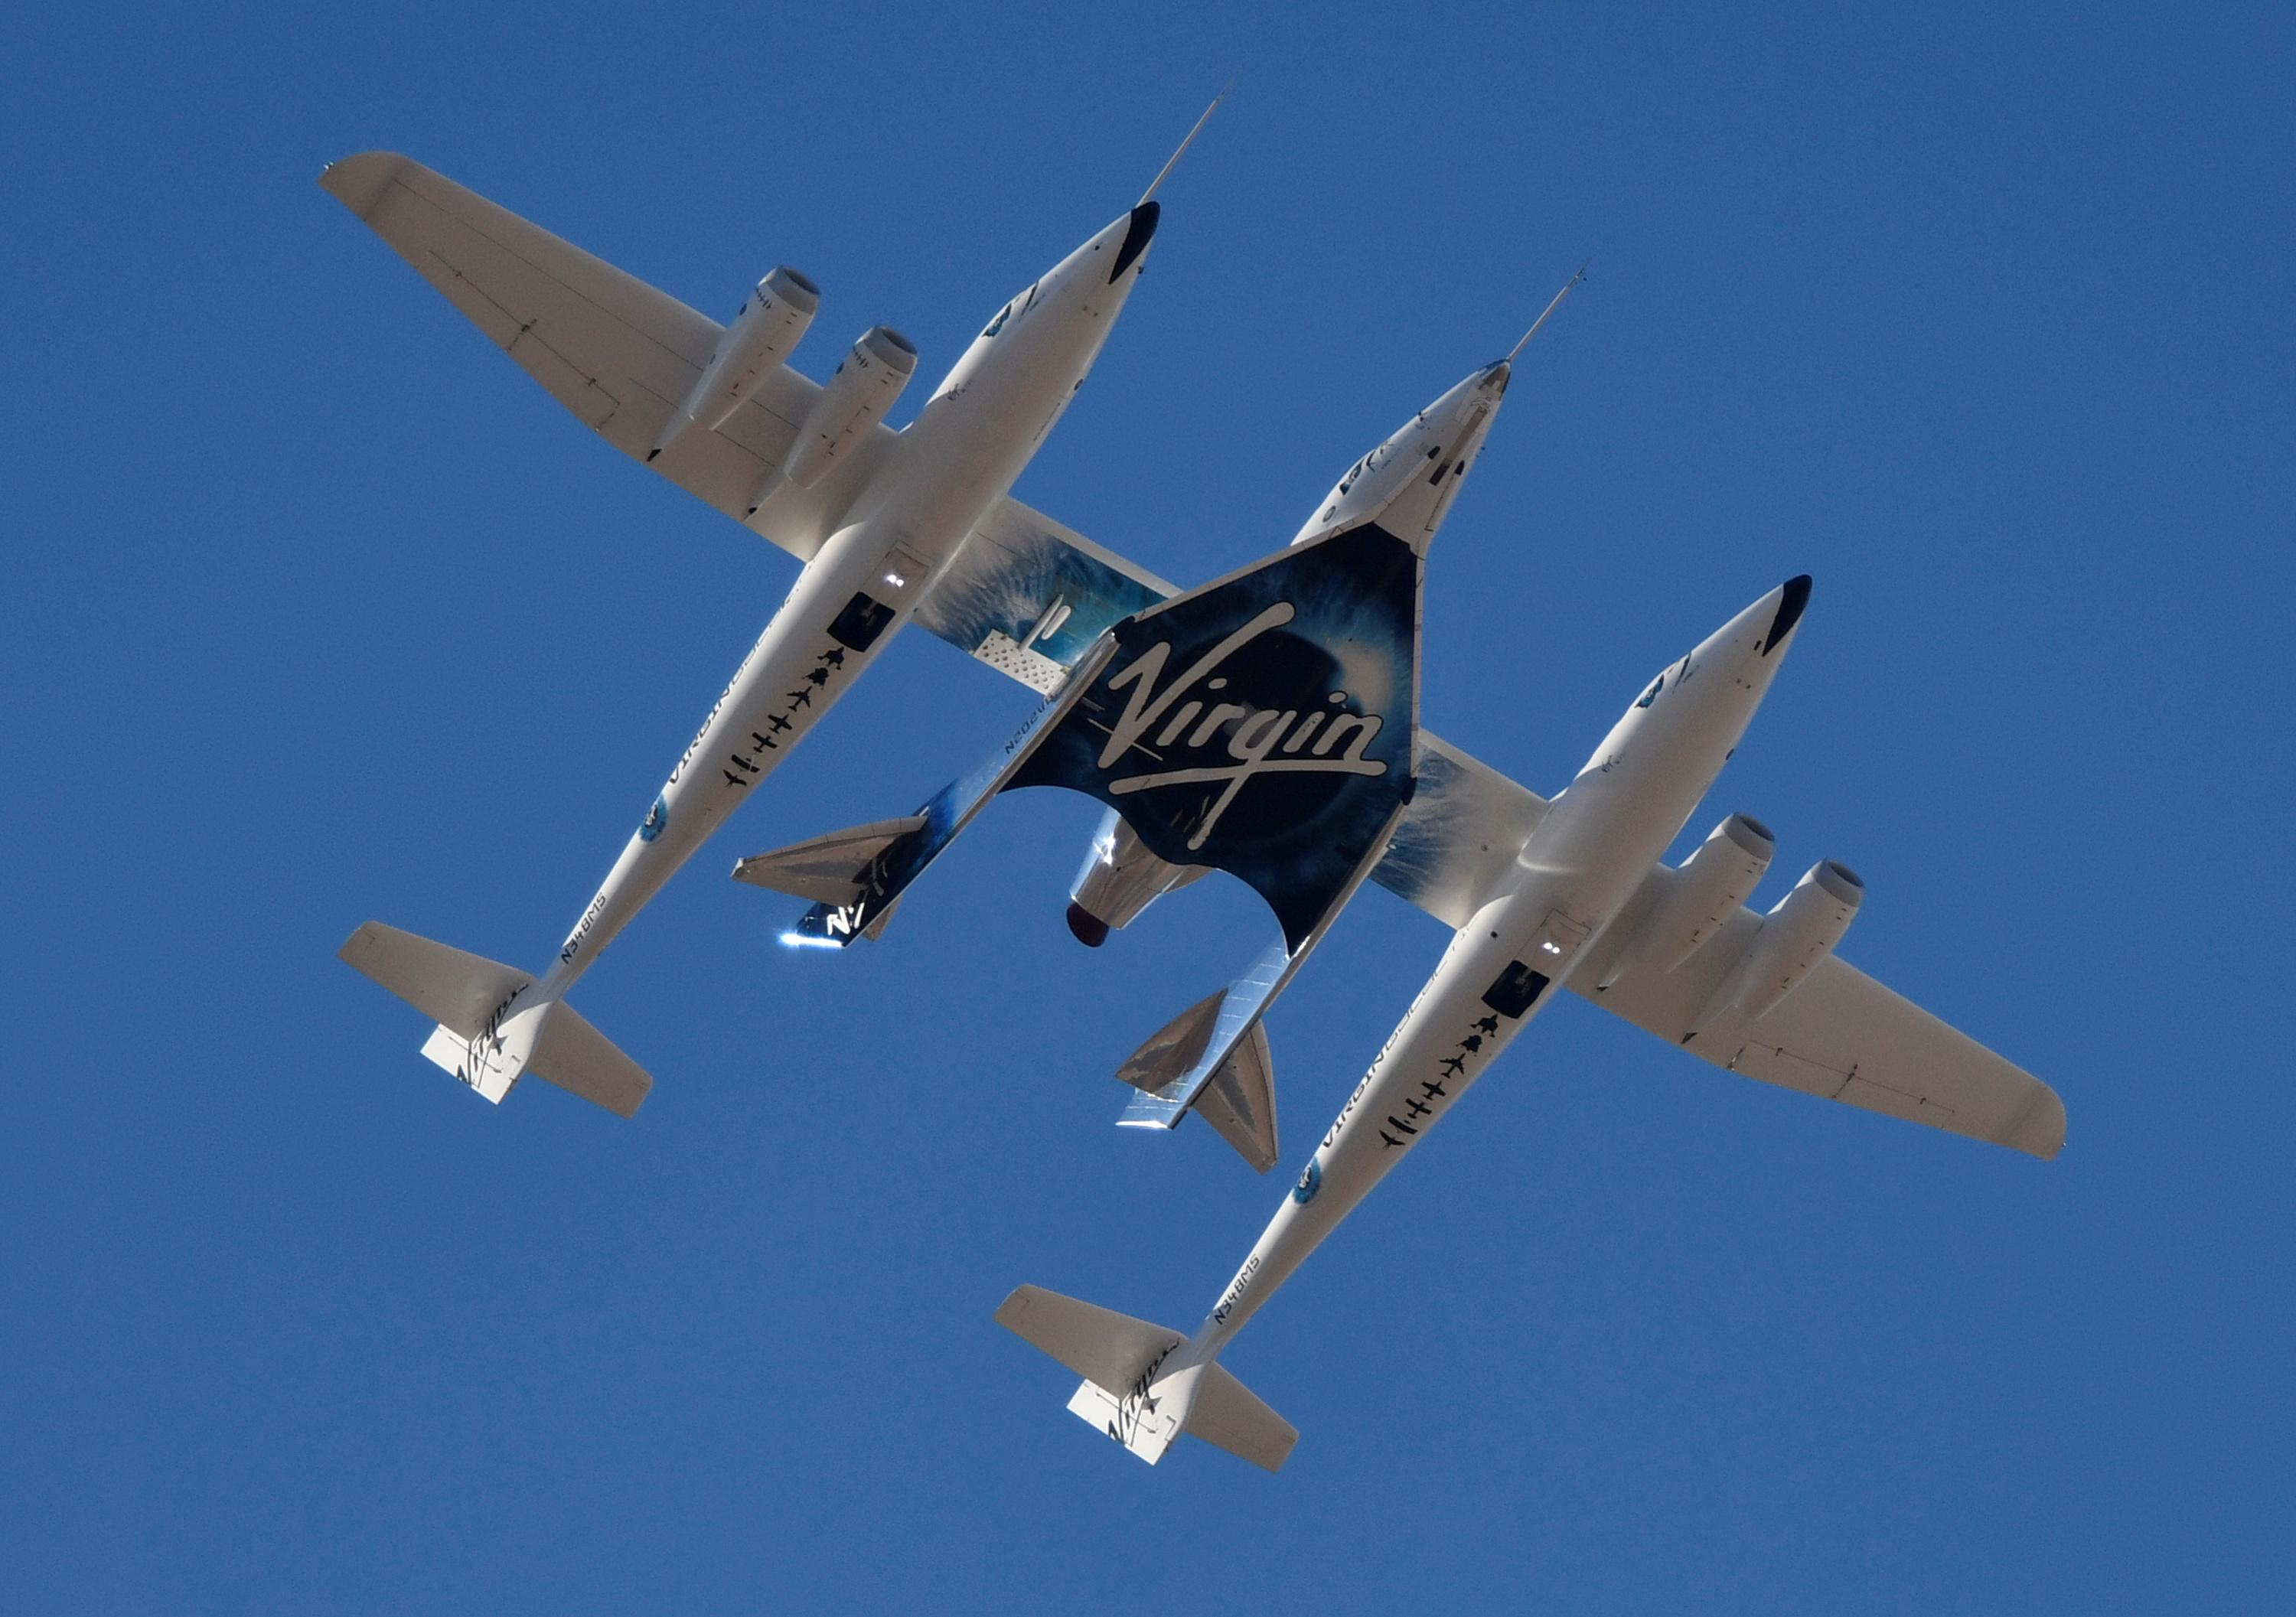 Branson's Virgin Galactic takes another step toward space